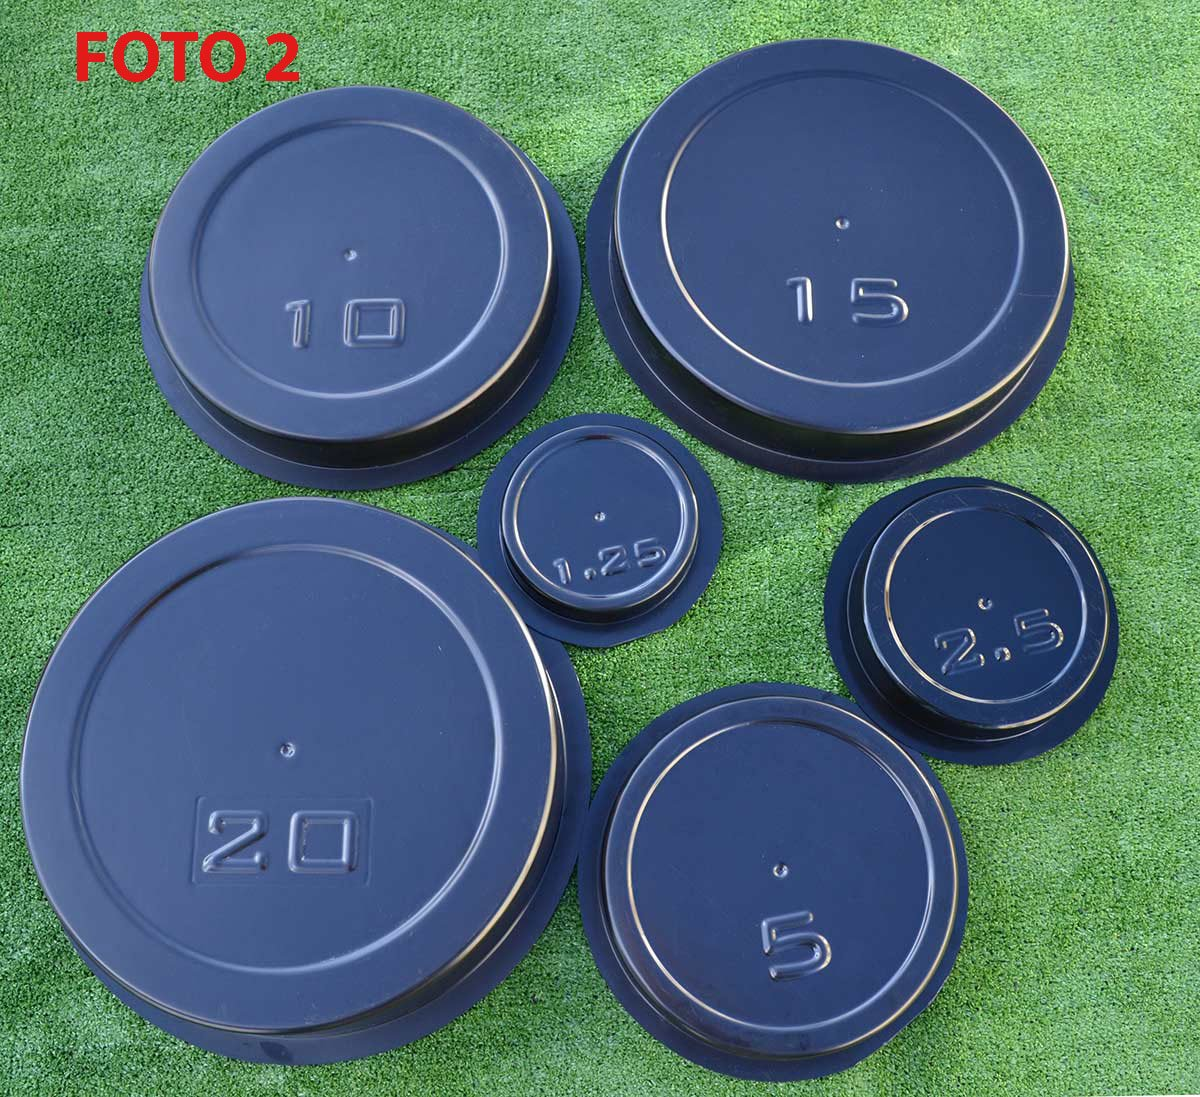 Amazon.com : SET 6 pcs MOLDS casting CONCRETE WEIGHT PLATES BARBELL DISCS OLYMPIC LIFTING : Sports & Outdoors